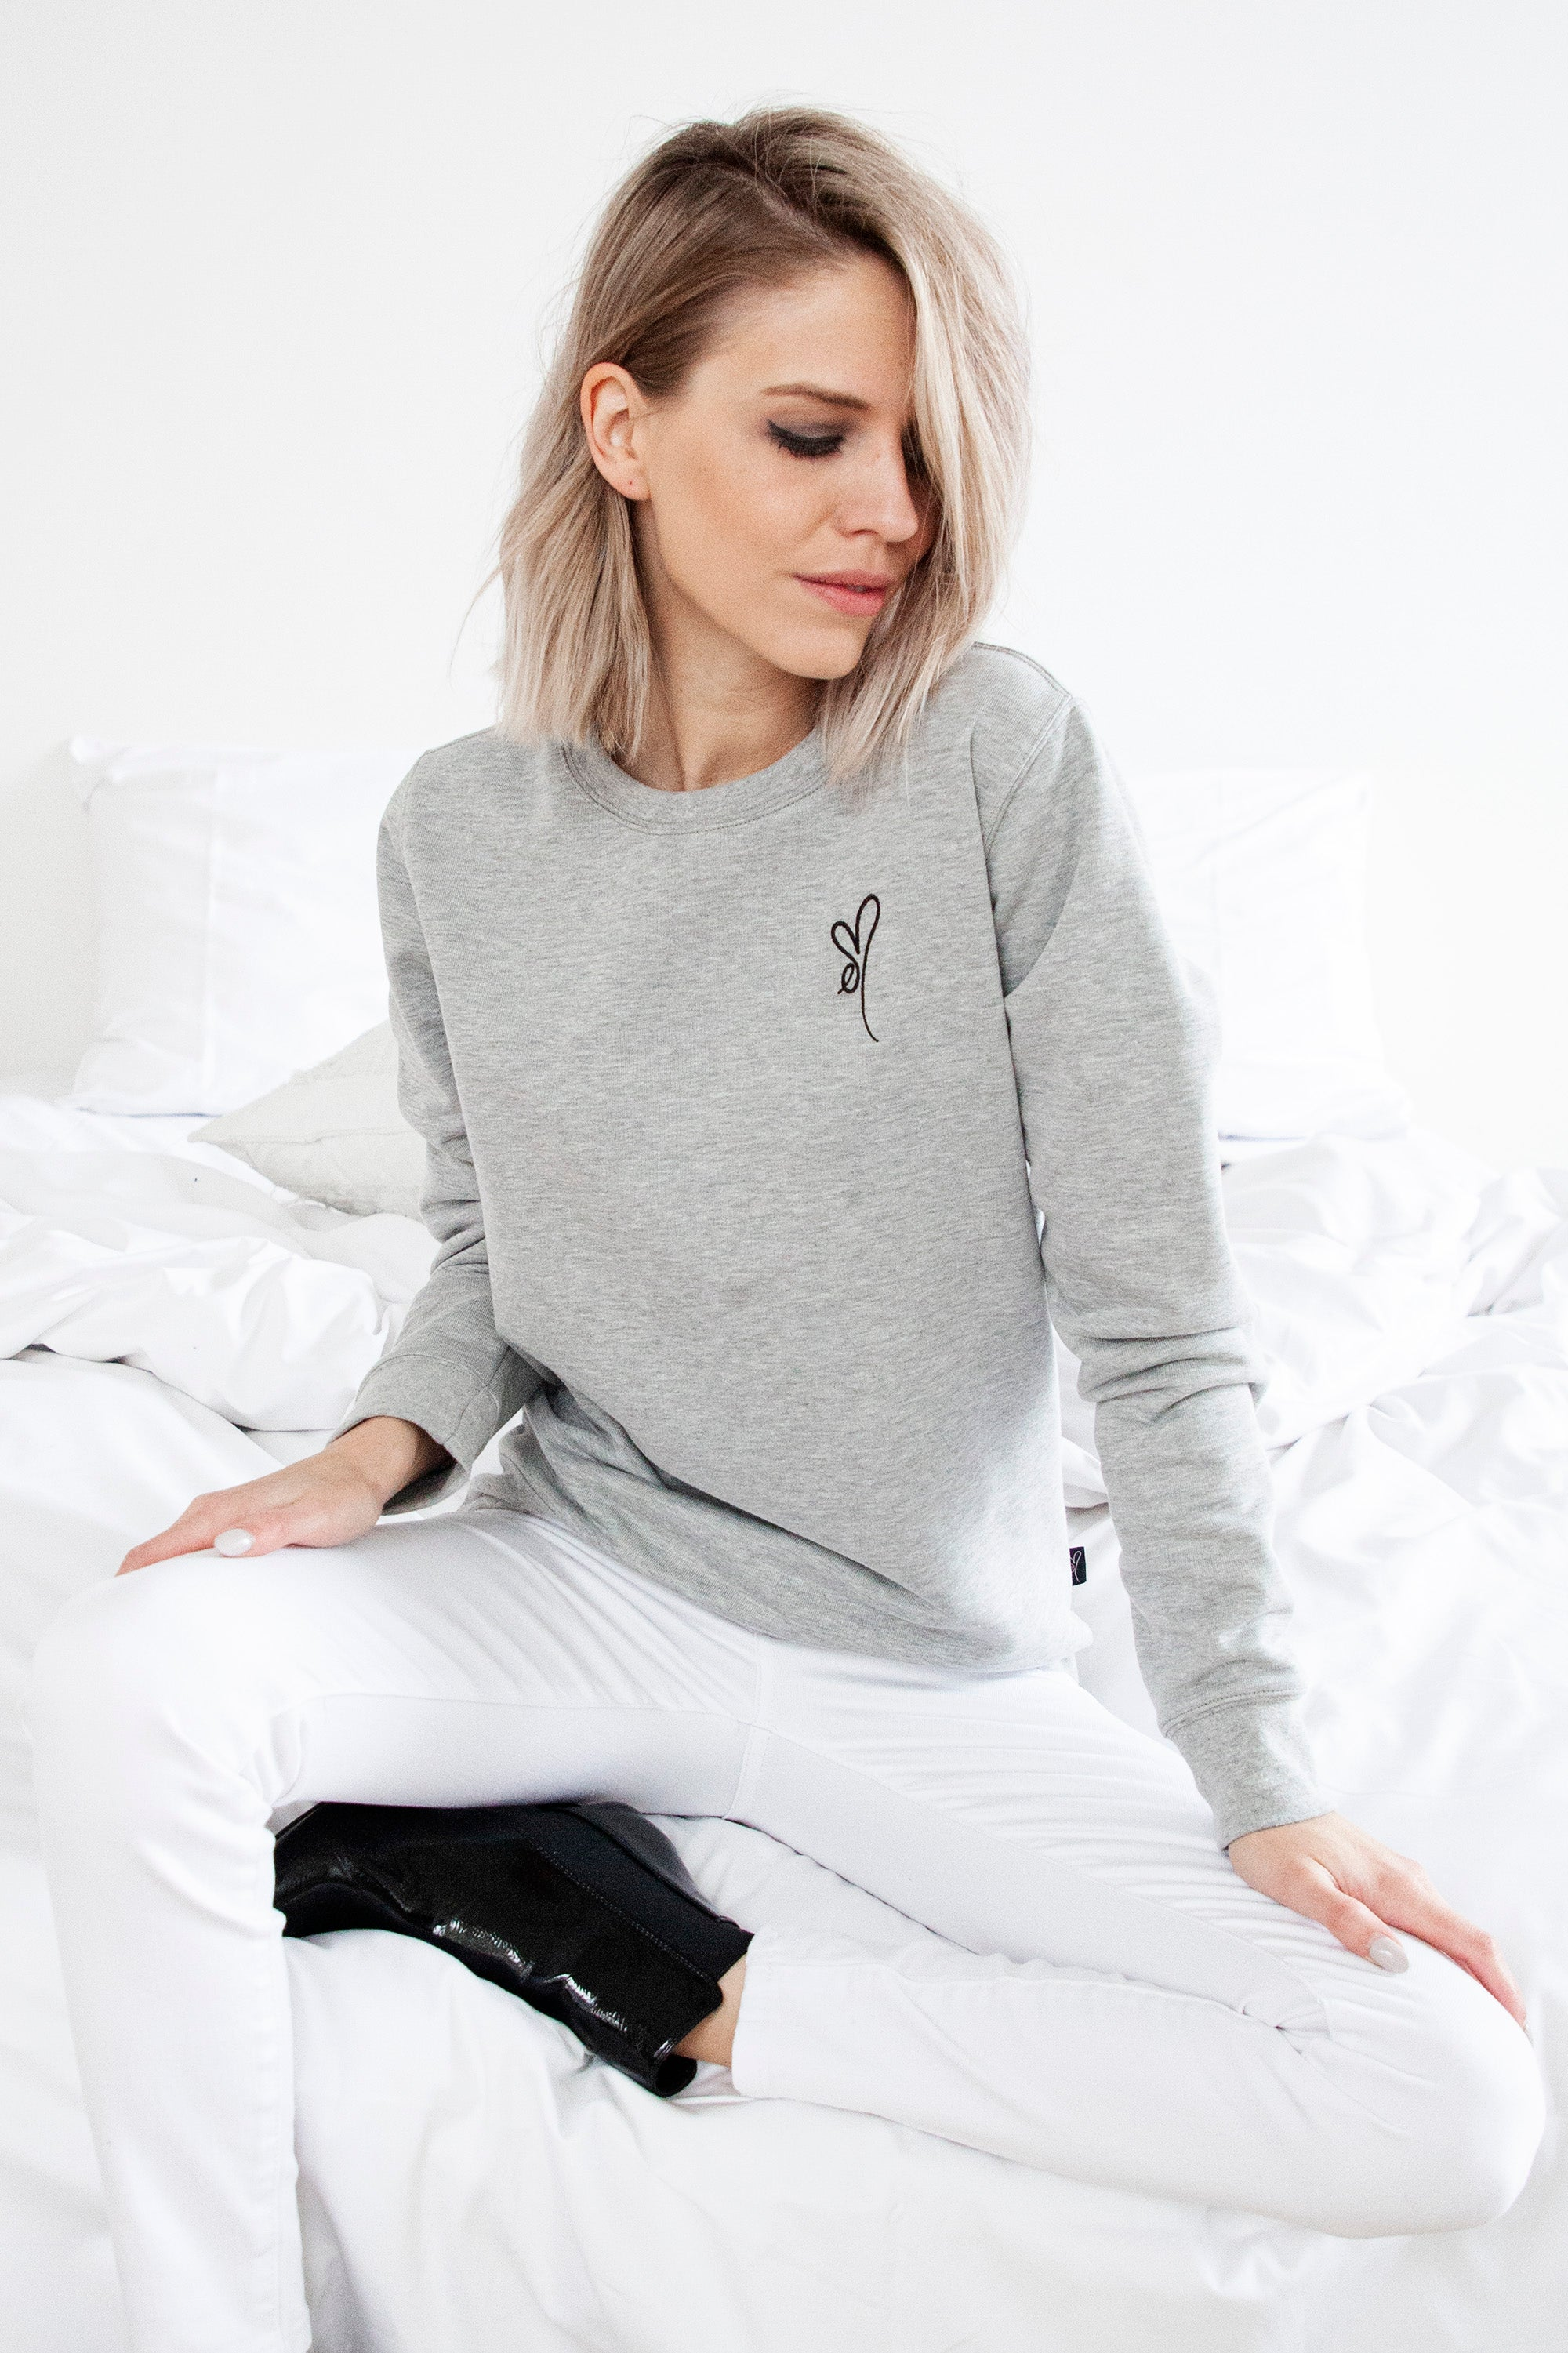 ellemilla ღ CHARLY in Grey/Black - Sweater